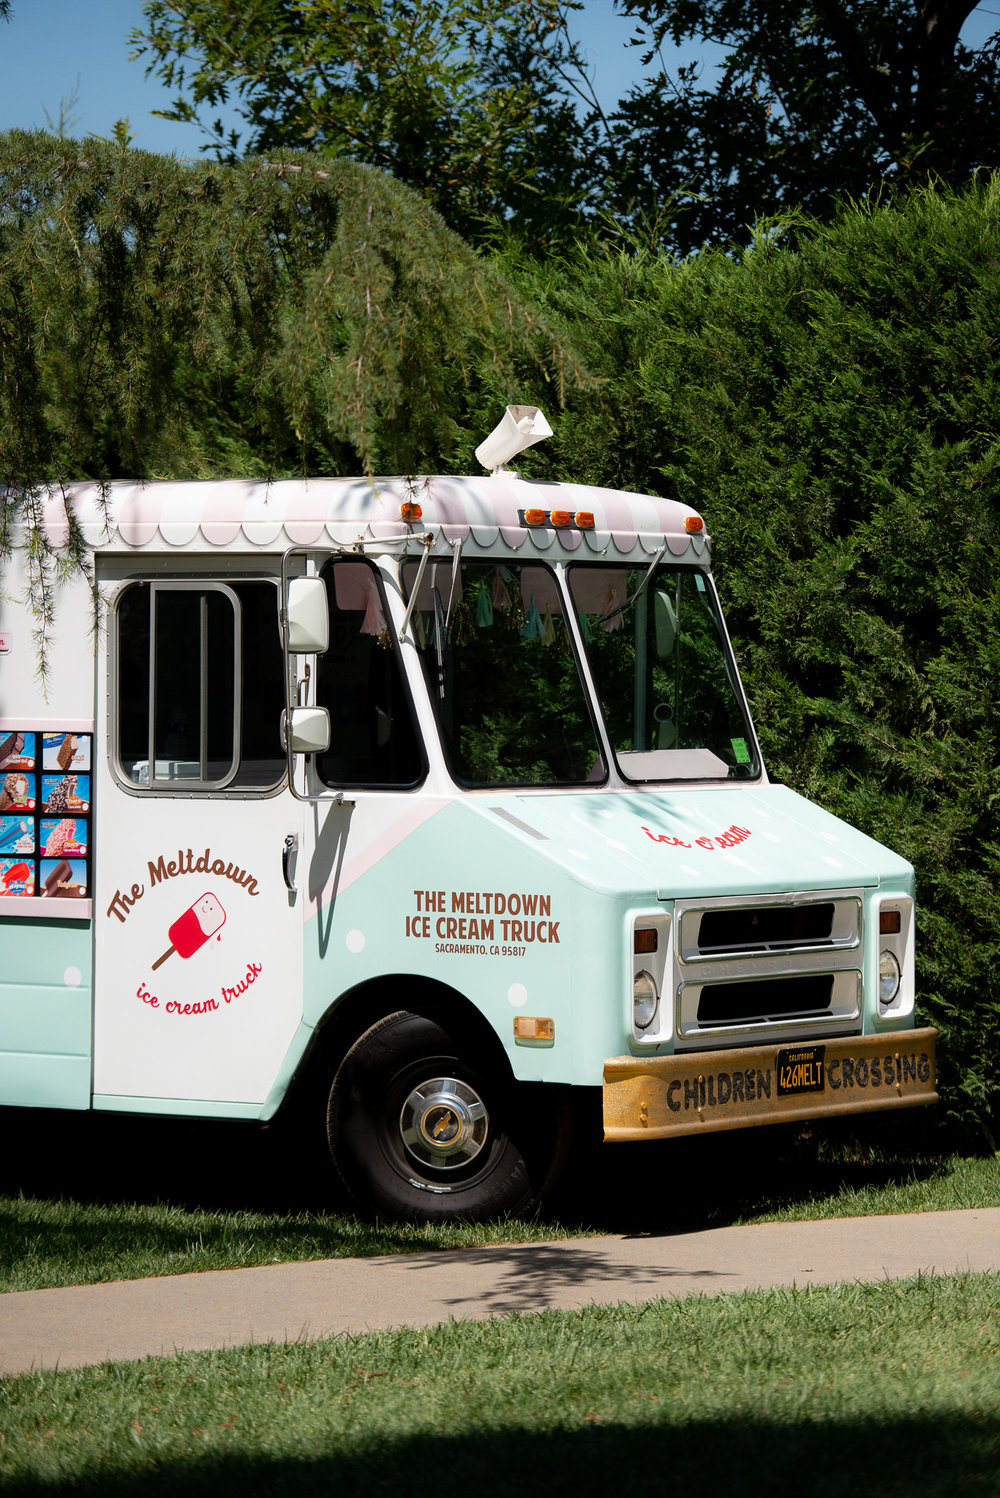 The Melt Down Ice Cream Truck